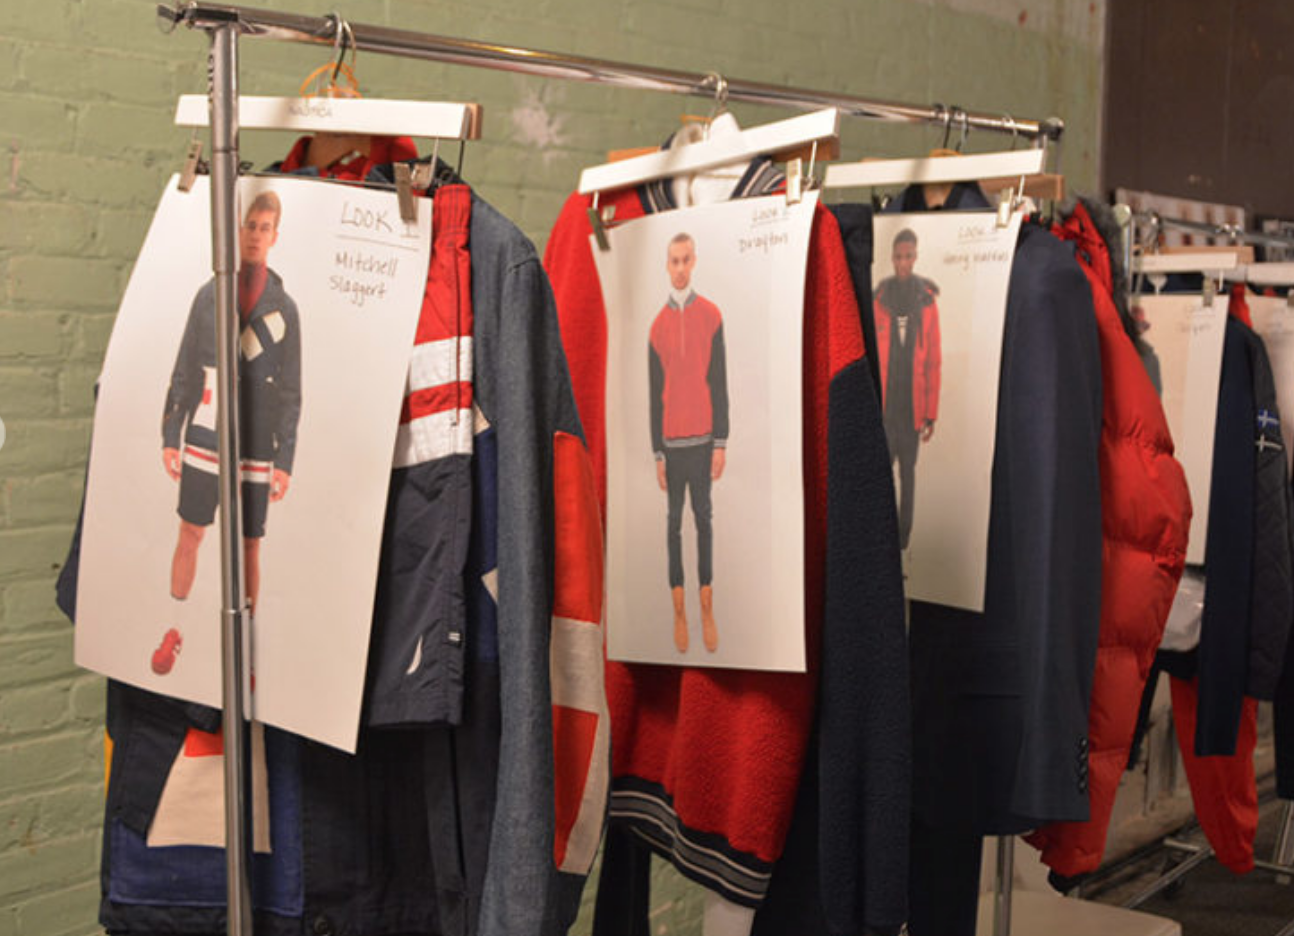 MR MAGAZINE - BACKSTAGE ACCESS: SCENES FROM THE SECOND HALF OF NYFWM